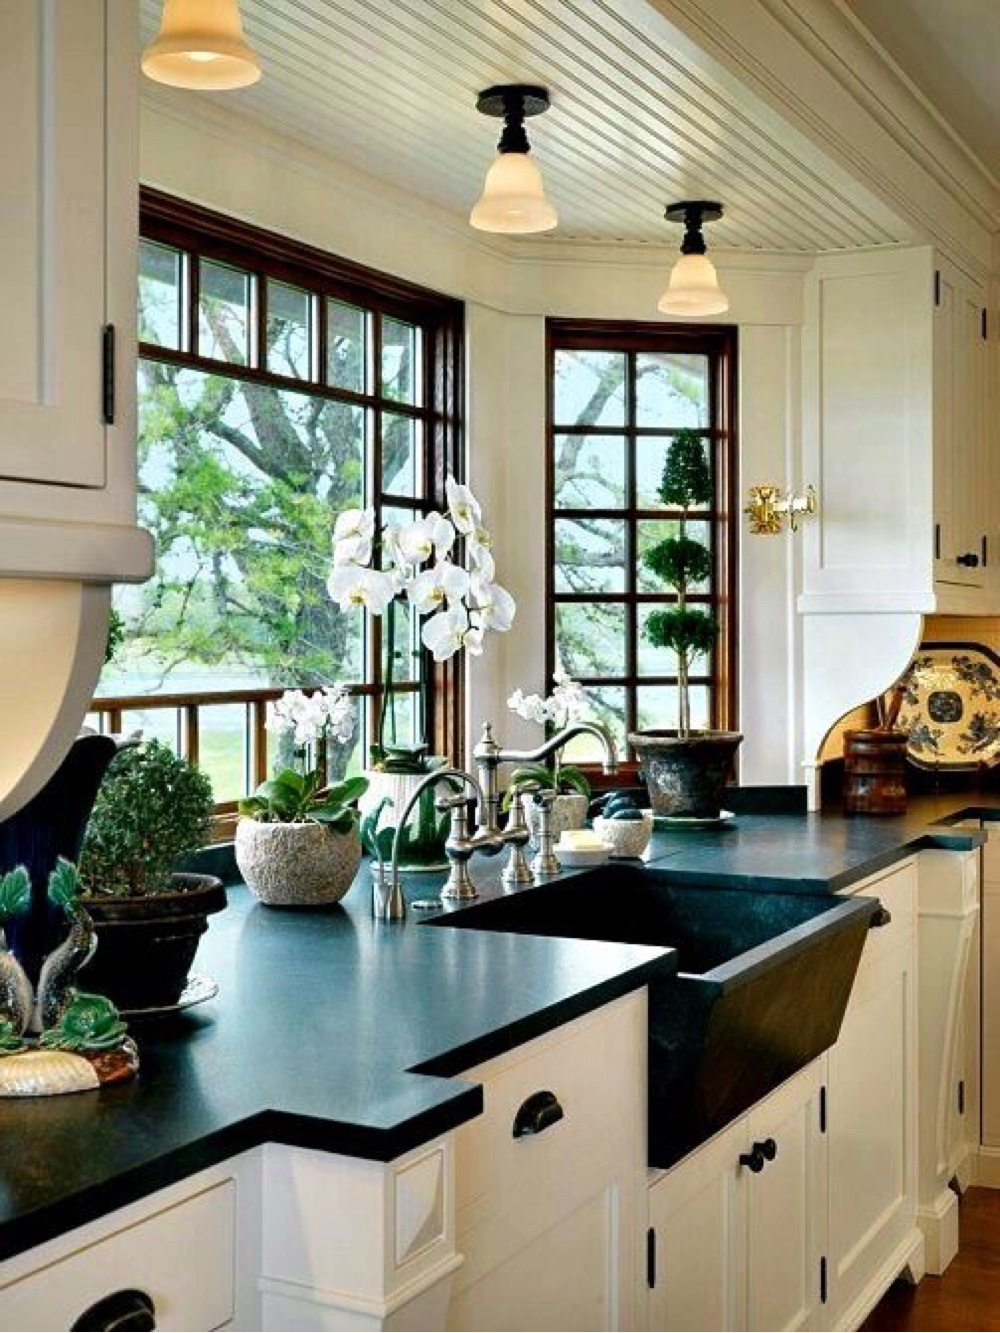 Country Kitchen Designs on country interior design, front porch designs, italian style kitchens designs, country room designs, country living rooms, laundry room designs, breakfast nook designs, pantry designs, country bar designs, country cottage kitchens, country modern kitchens, rustic bath designs, family room designs, country farmhouse kitchens, country living kitchens, country bedrooms, living room designs, great room designs, country backyard designs, paneling designs,